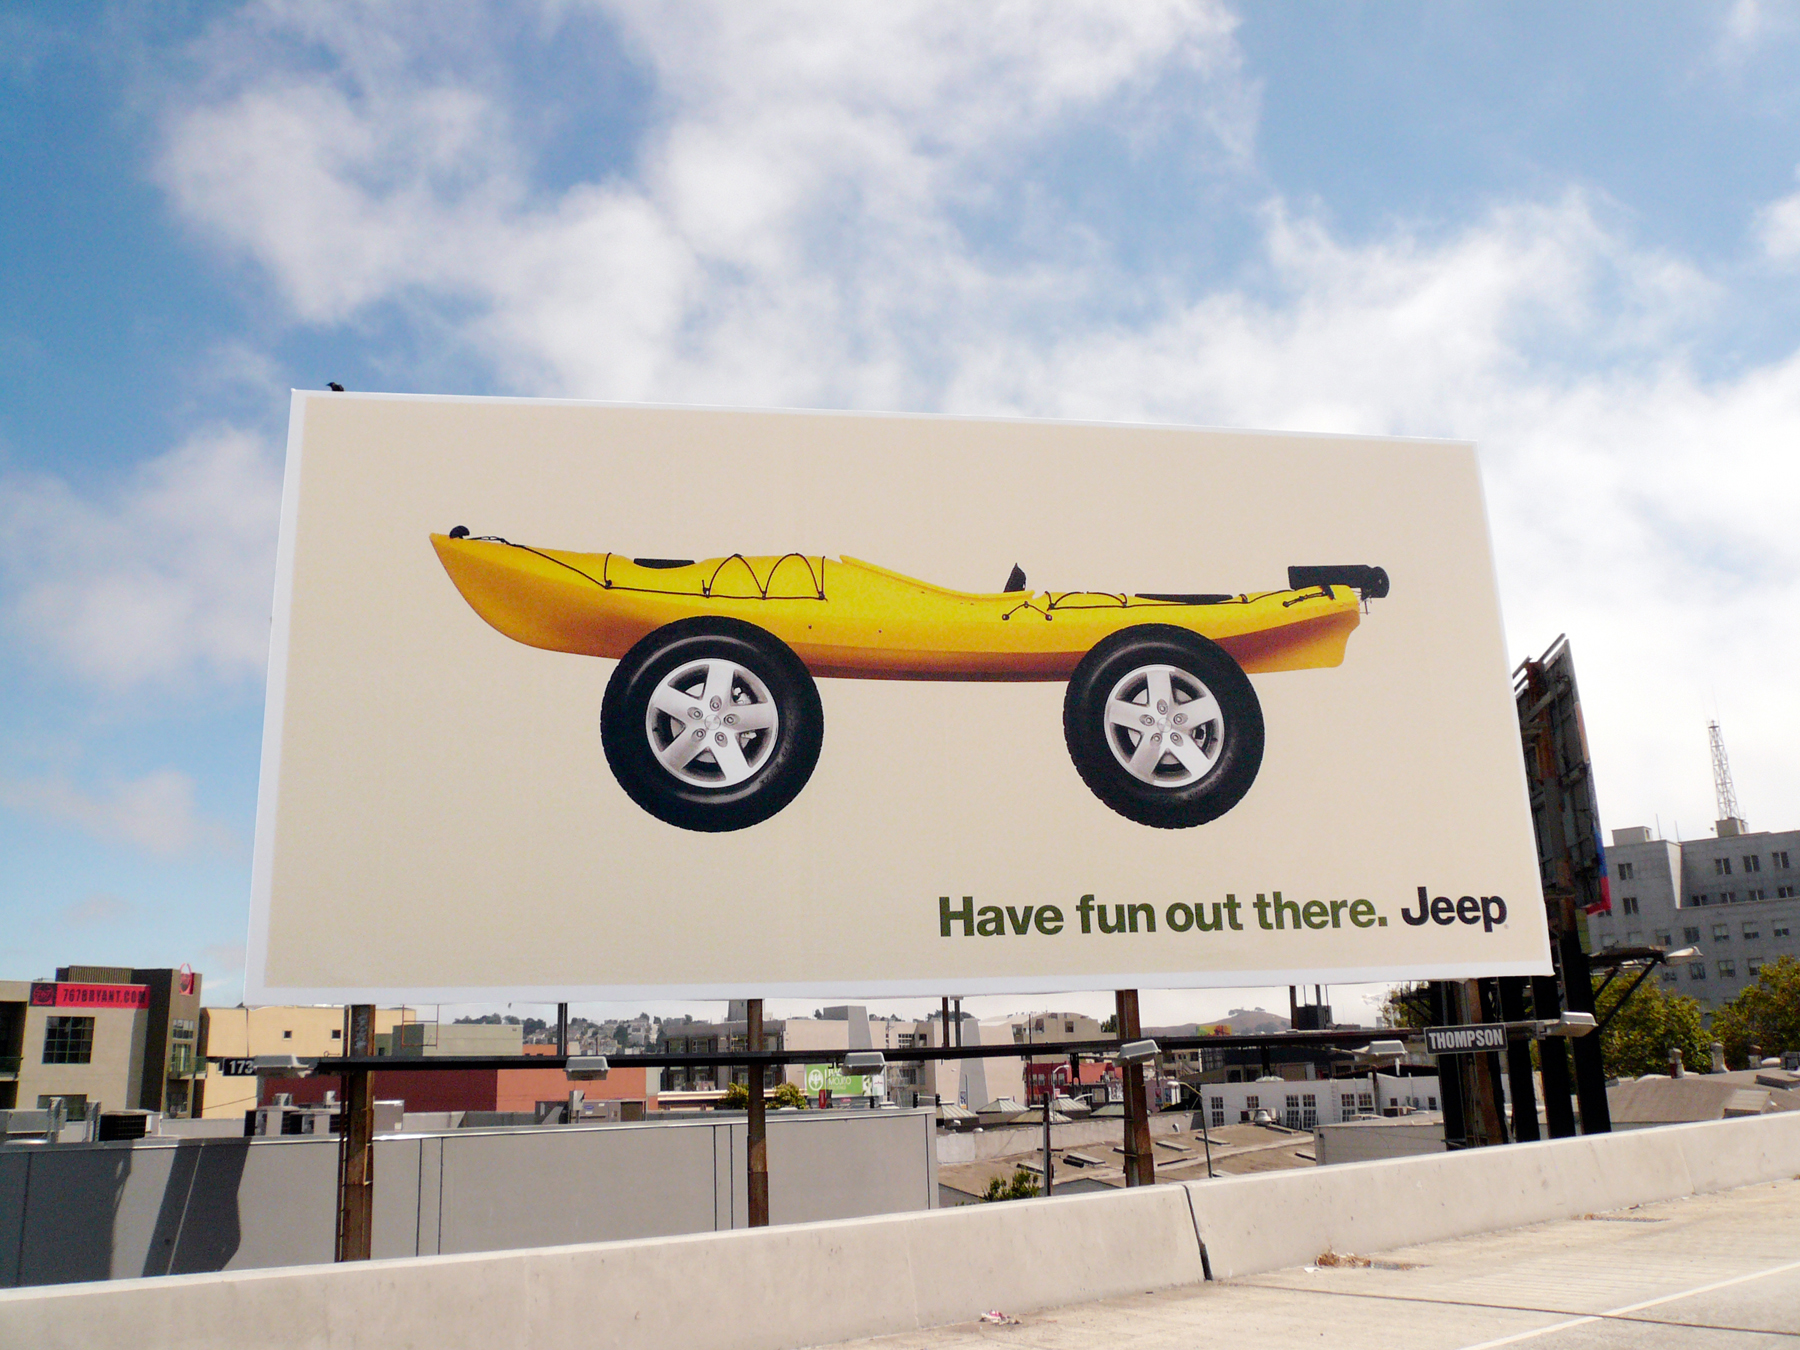 Jeep-Have-Fun-Out-There-Kayak